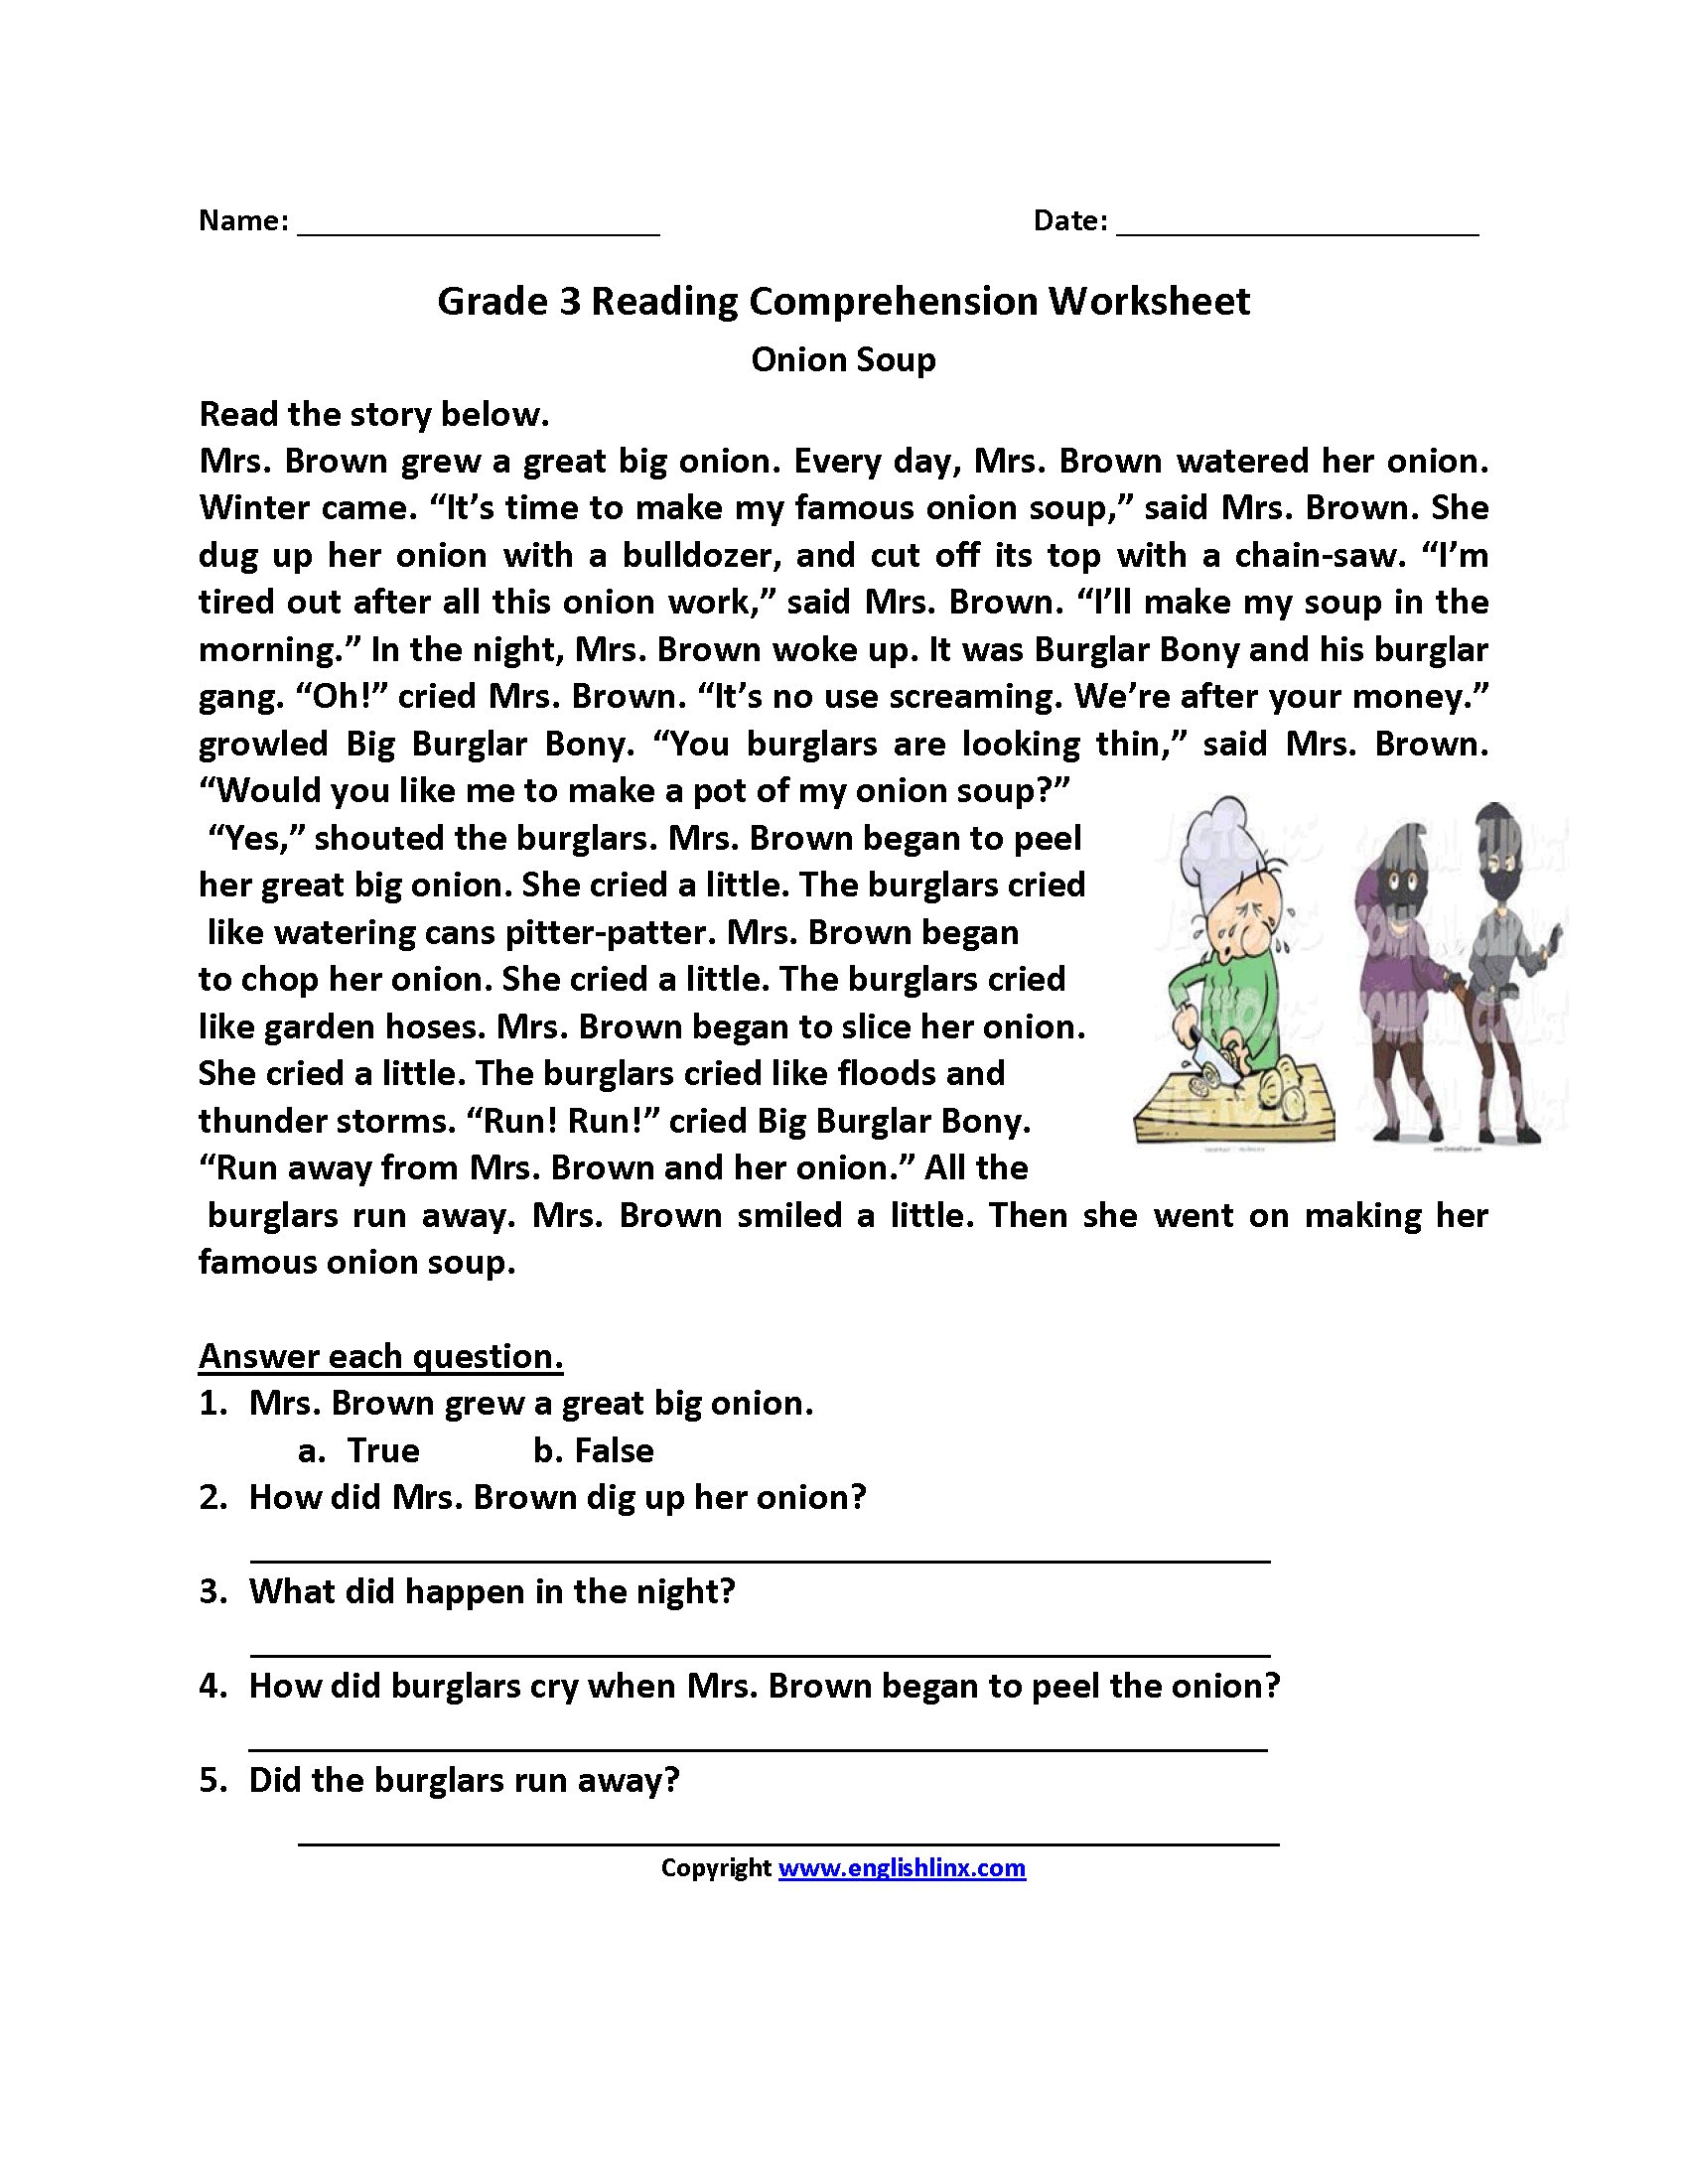 Free Printable Reading Comprehension Worksheets  Yooob Throughout Free Reading Comprehension Worksheets For 3Rd Grade